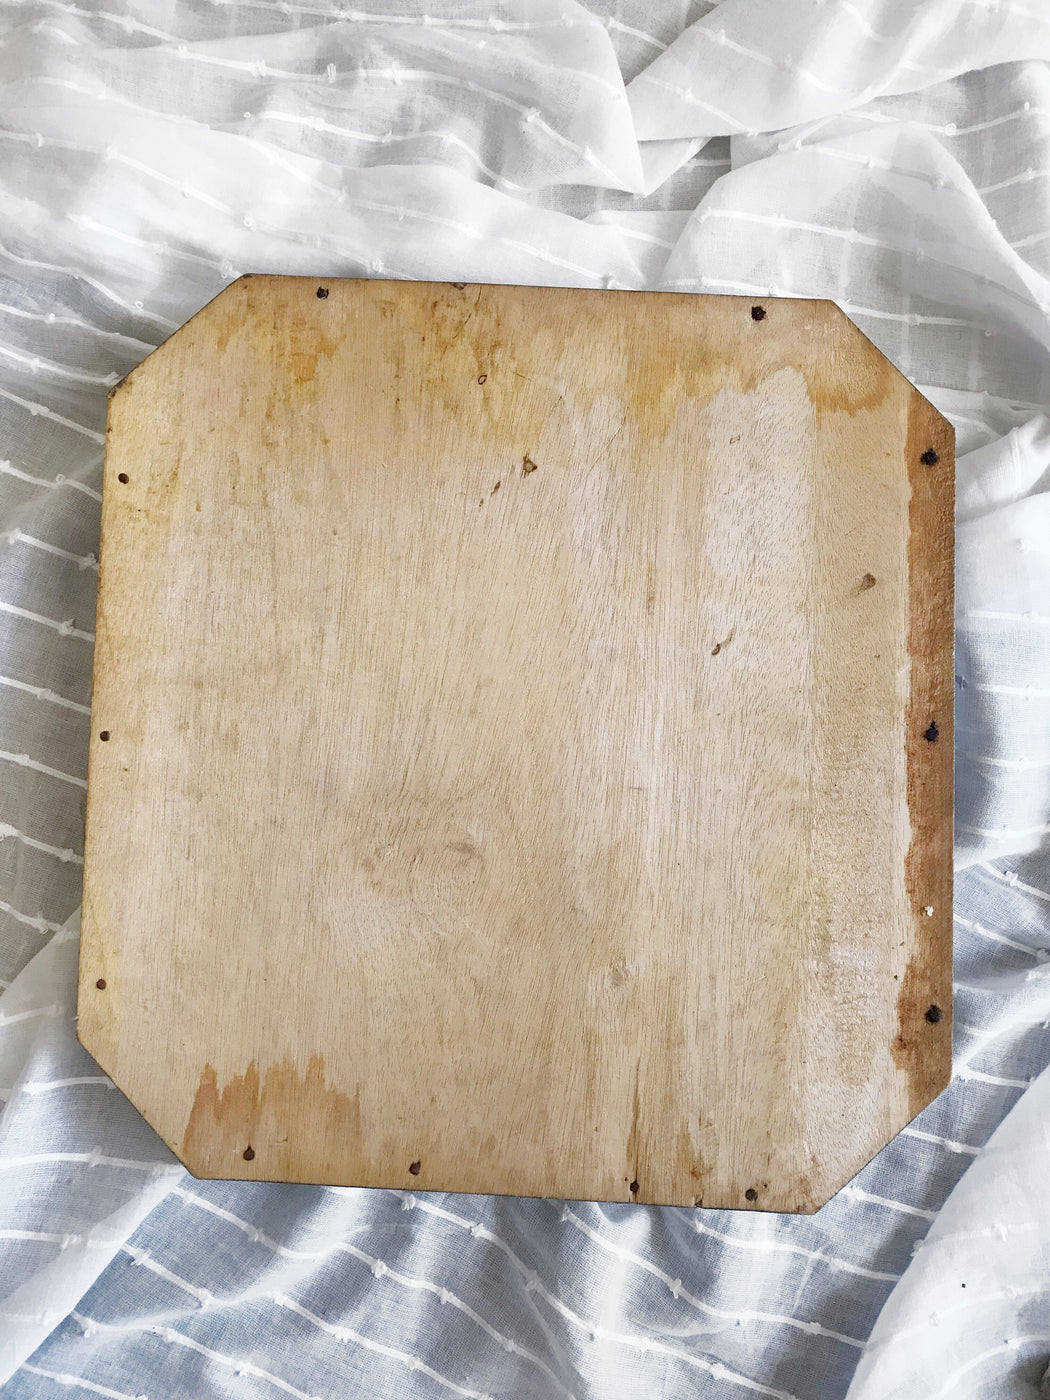 Carved Wooden Serving Tray - Storytellers Workshop